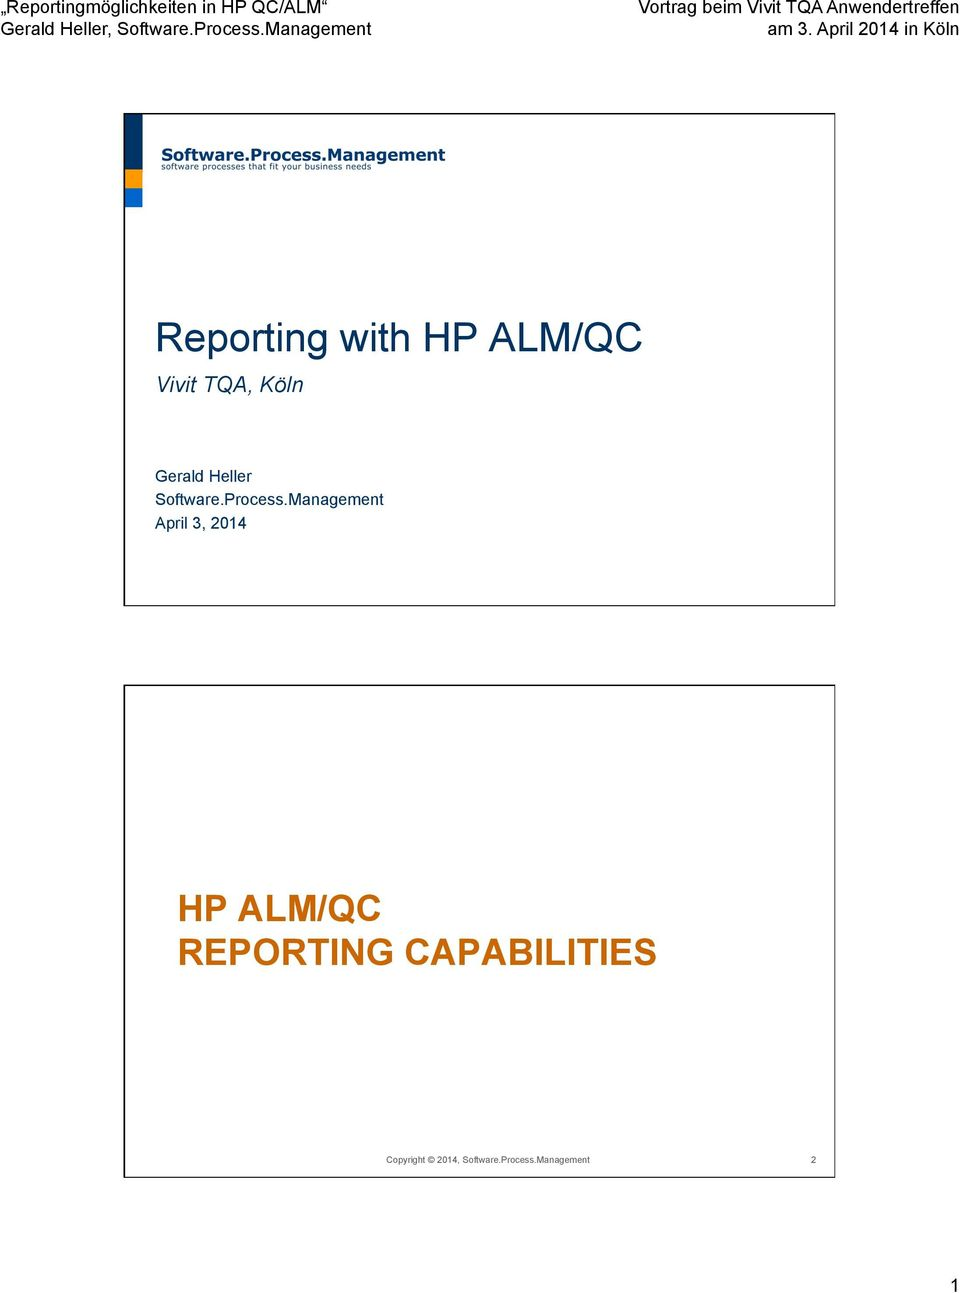 Reporting with HP ALM/QC - PDF